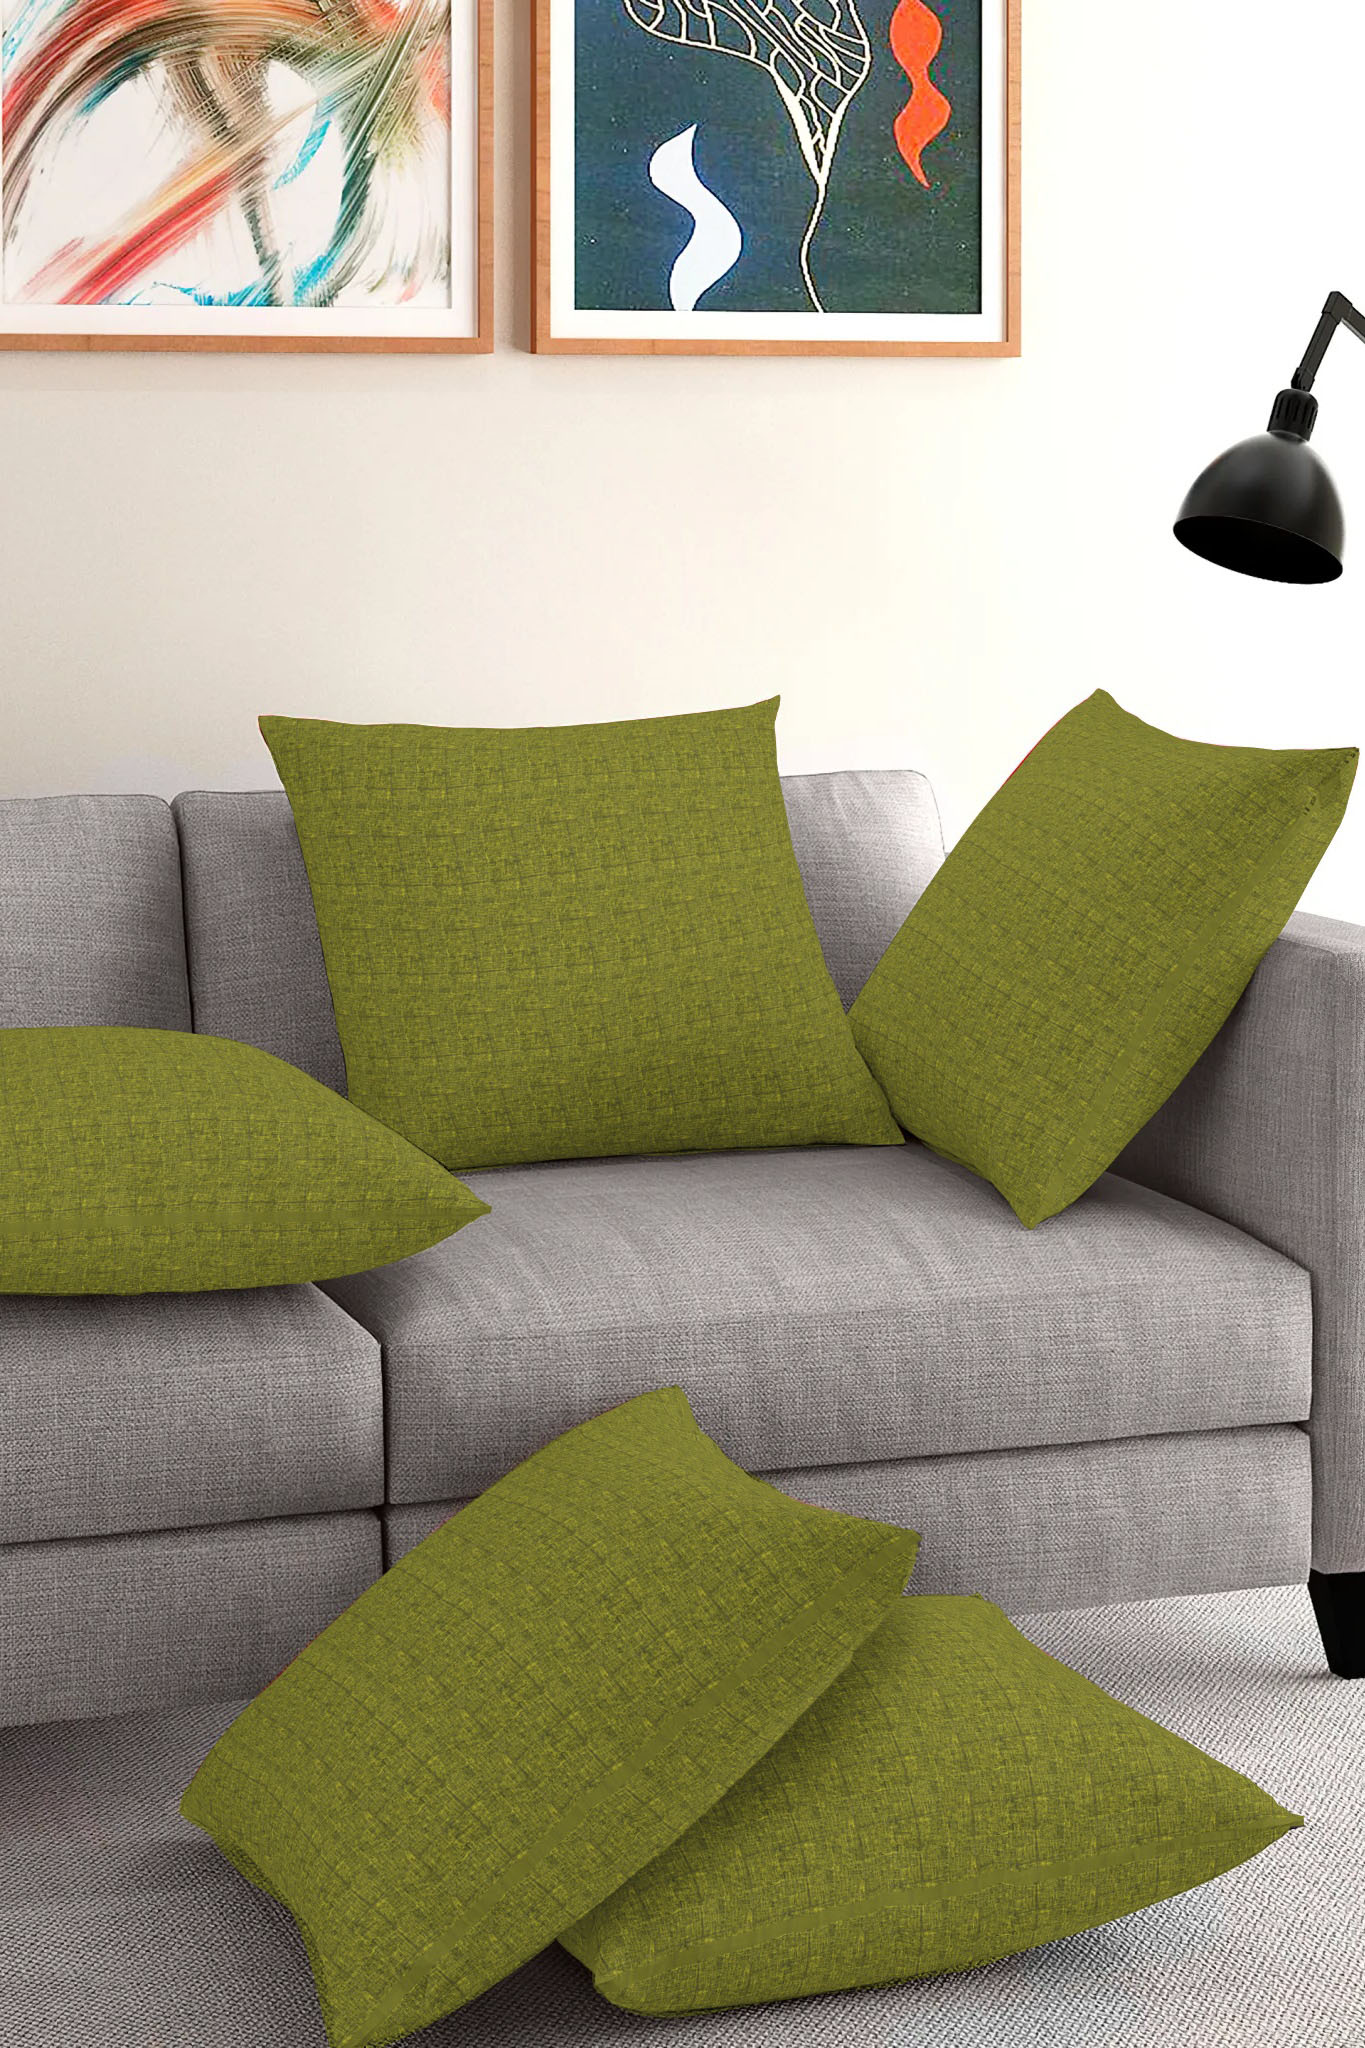 Set of 5-Olive Green Black Cotton Cushion Cover-35387-16x16 Inches